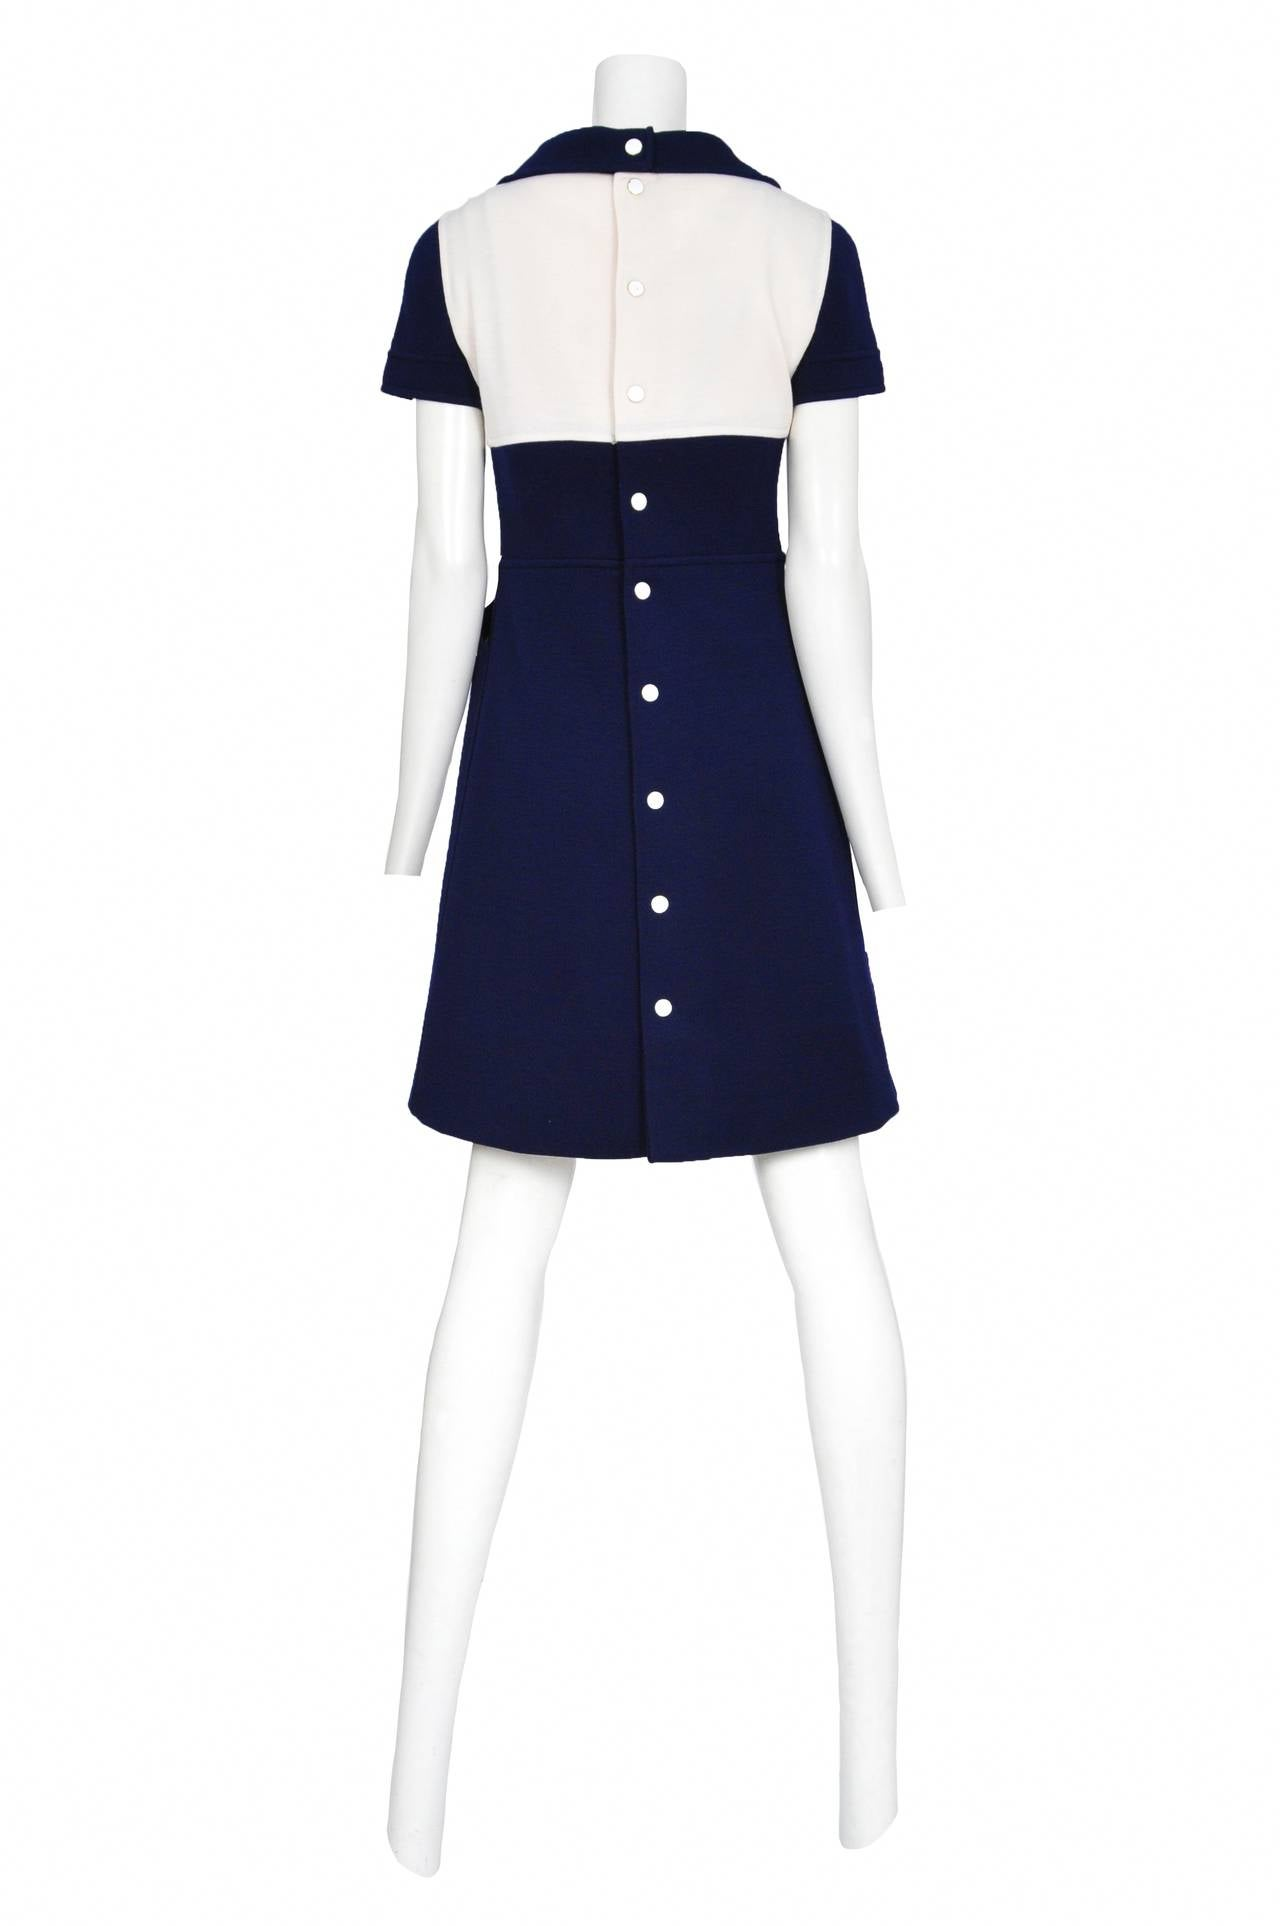 Vintage Andre Courreges blue short sleeve wool dress with white yoke featuring the Courreges symbol at neckline and white buttons up the front of the skirt as well as along the center back of the dress.